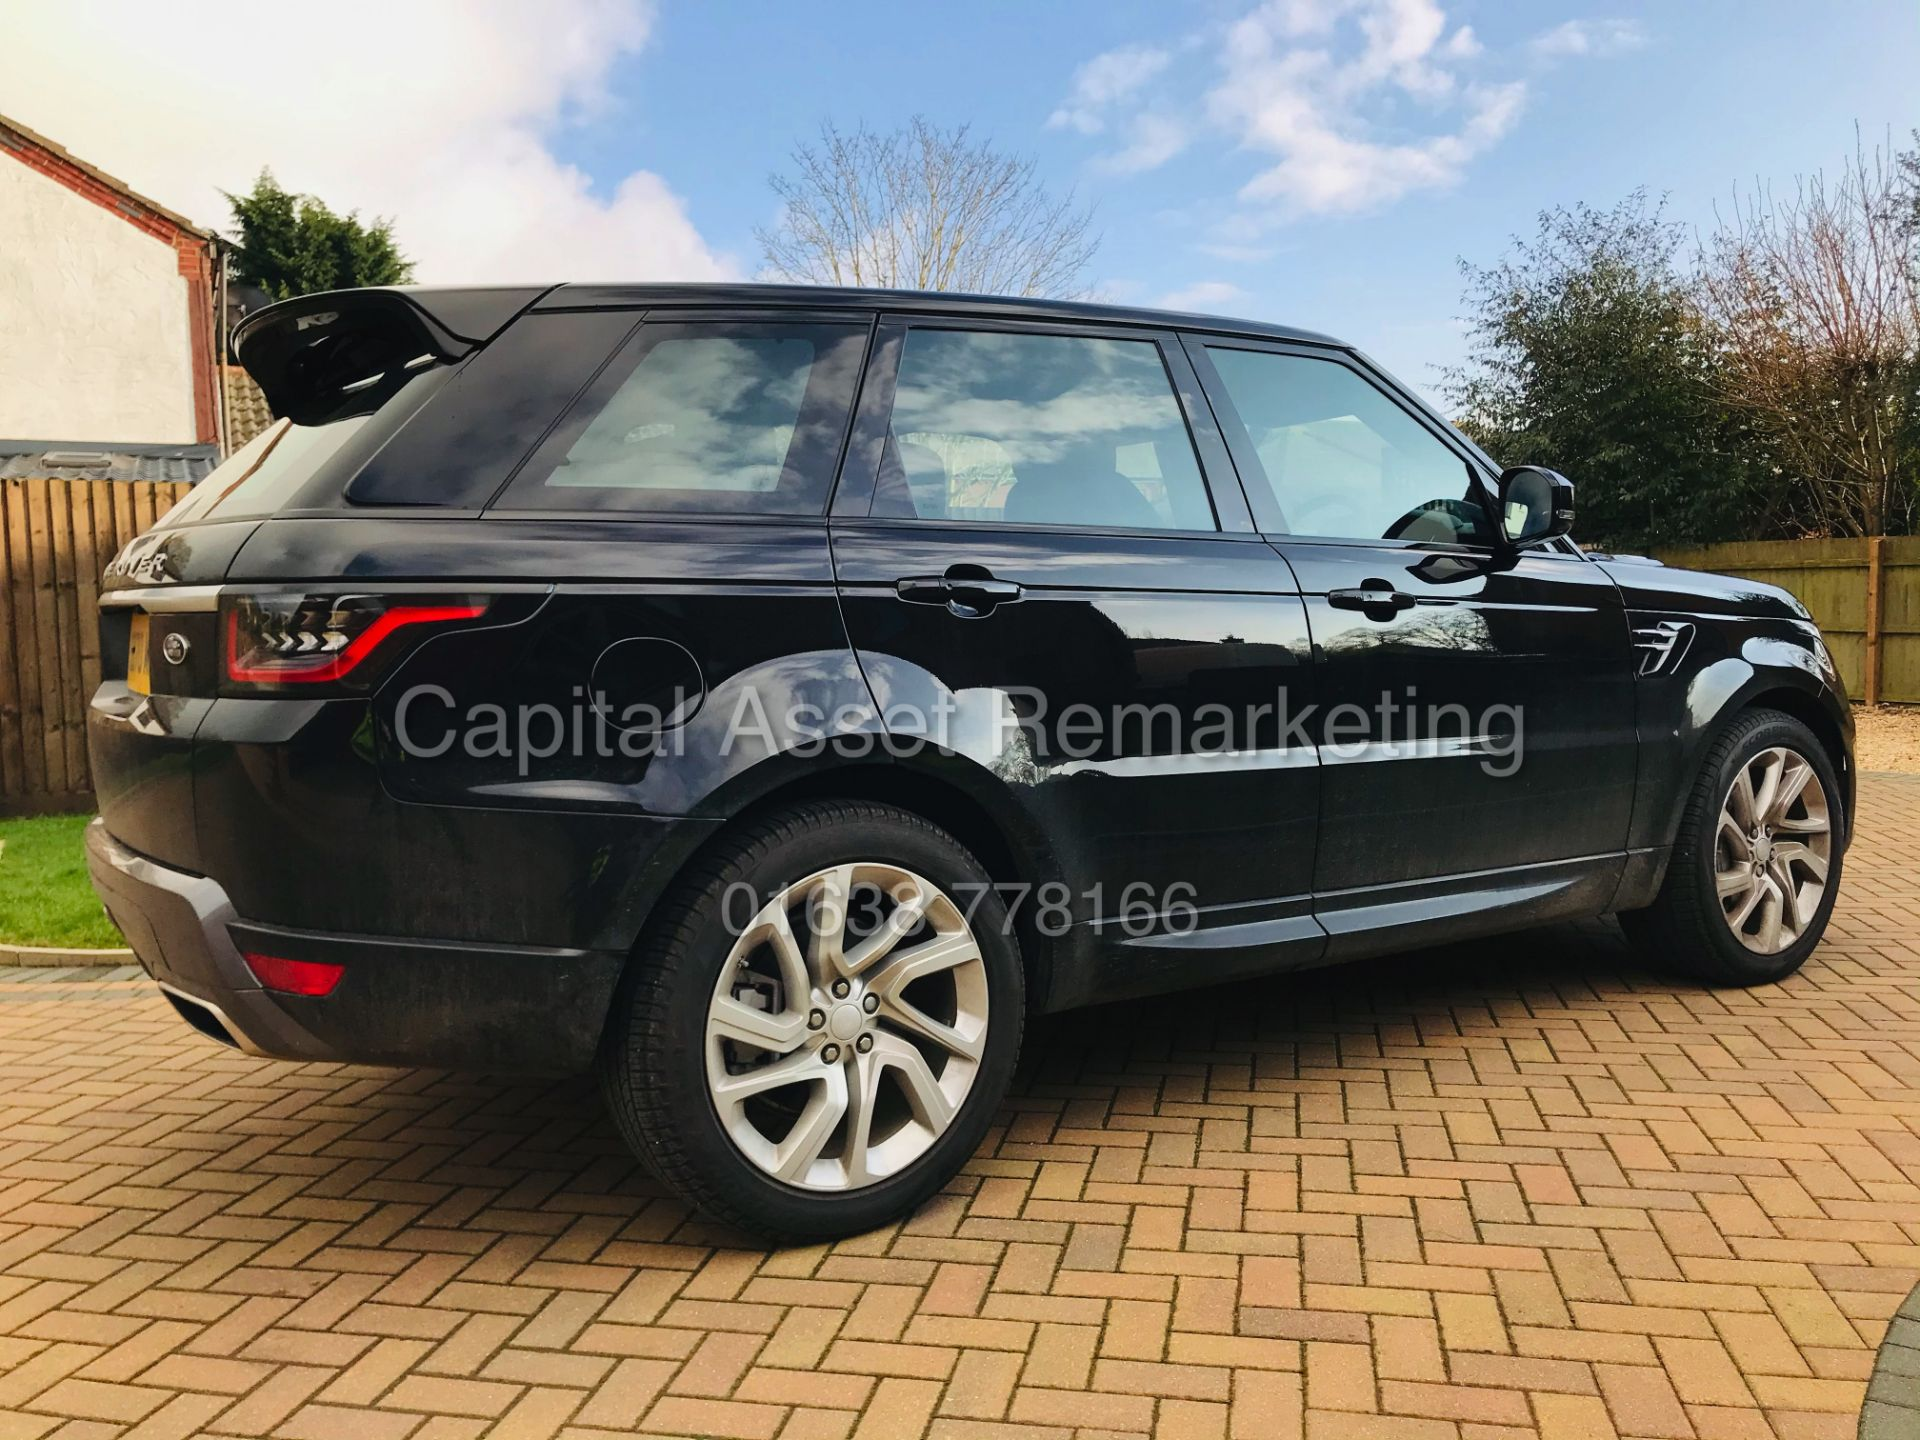 "(ON SALE) RANGE ROVER SPORT ""HSE - BLACK"" 3.0D MHEV-D300 (2021 MODEL - NEW SPEC) PAN ROOF -MEGA SPEC - Image 5 of 47"